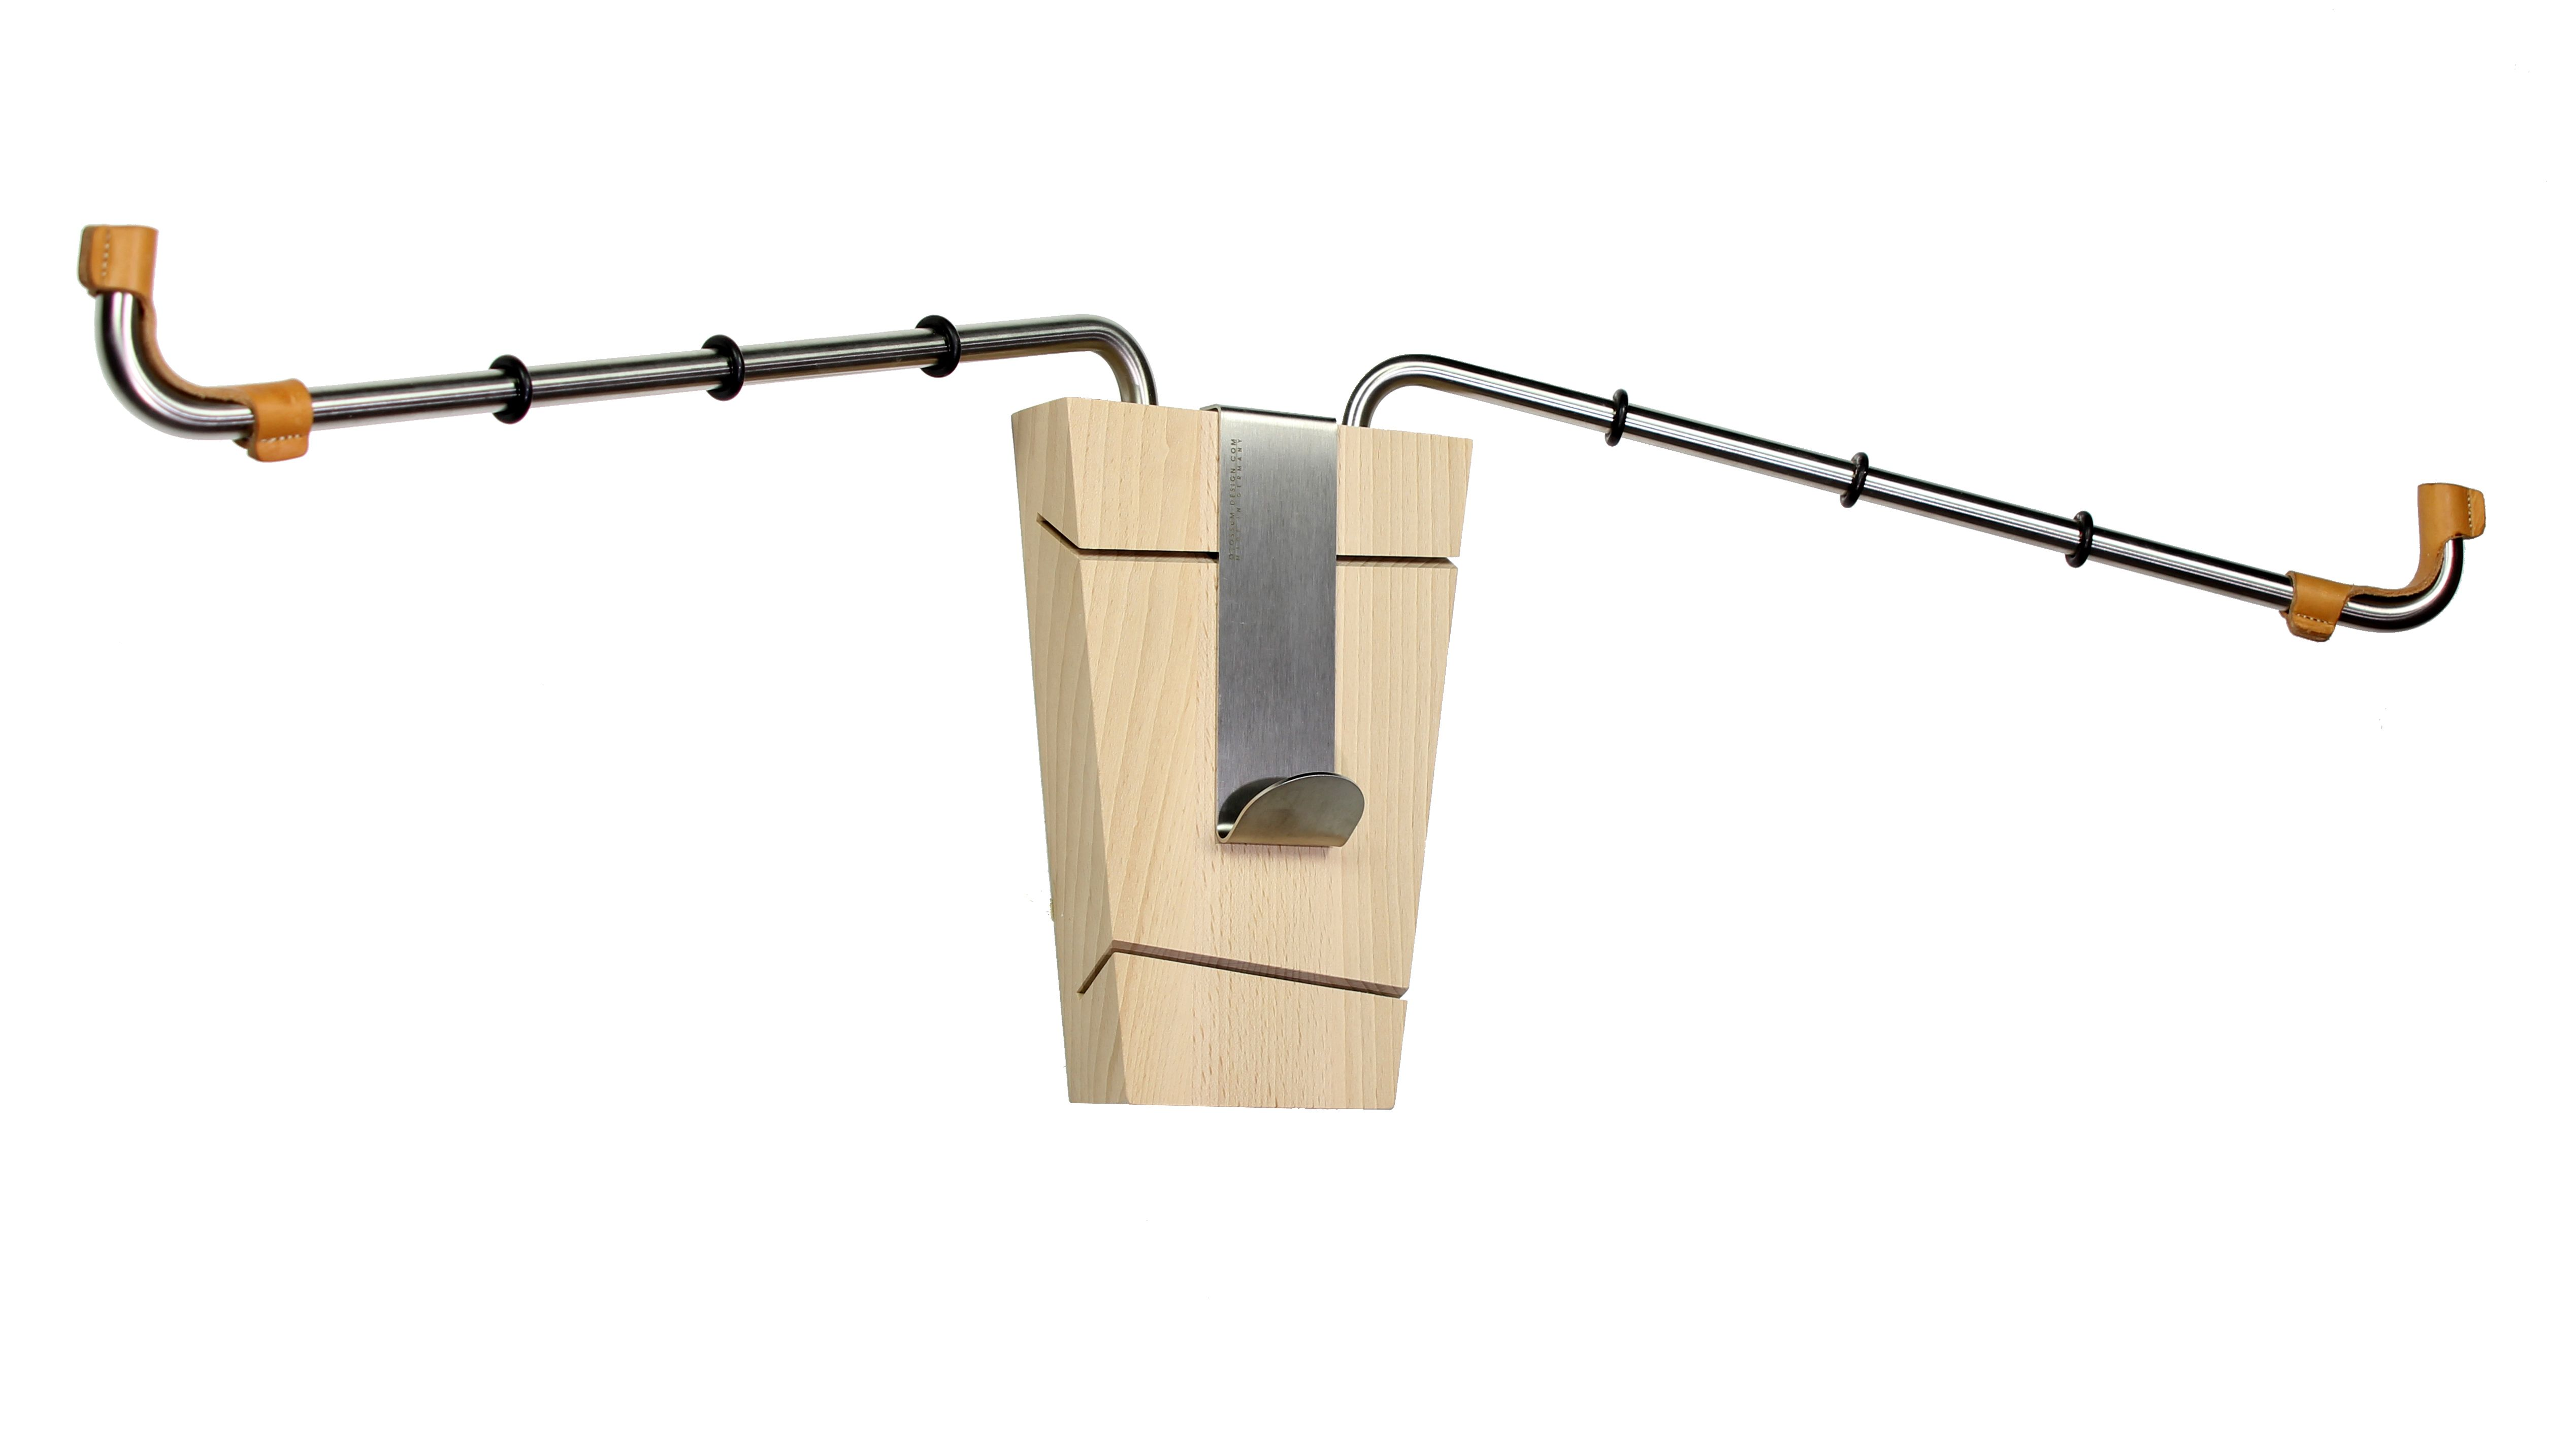 Bike Holder Elk For Bicycles With A Handlebar Width Up To 85cm